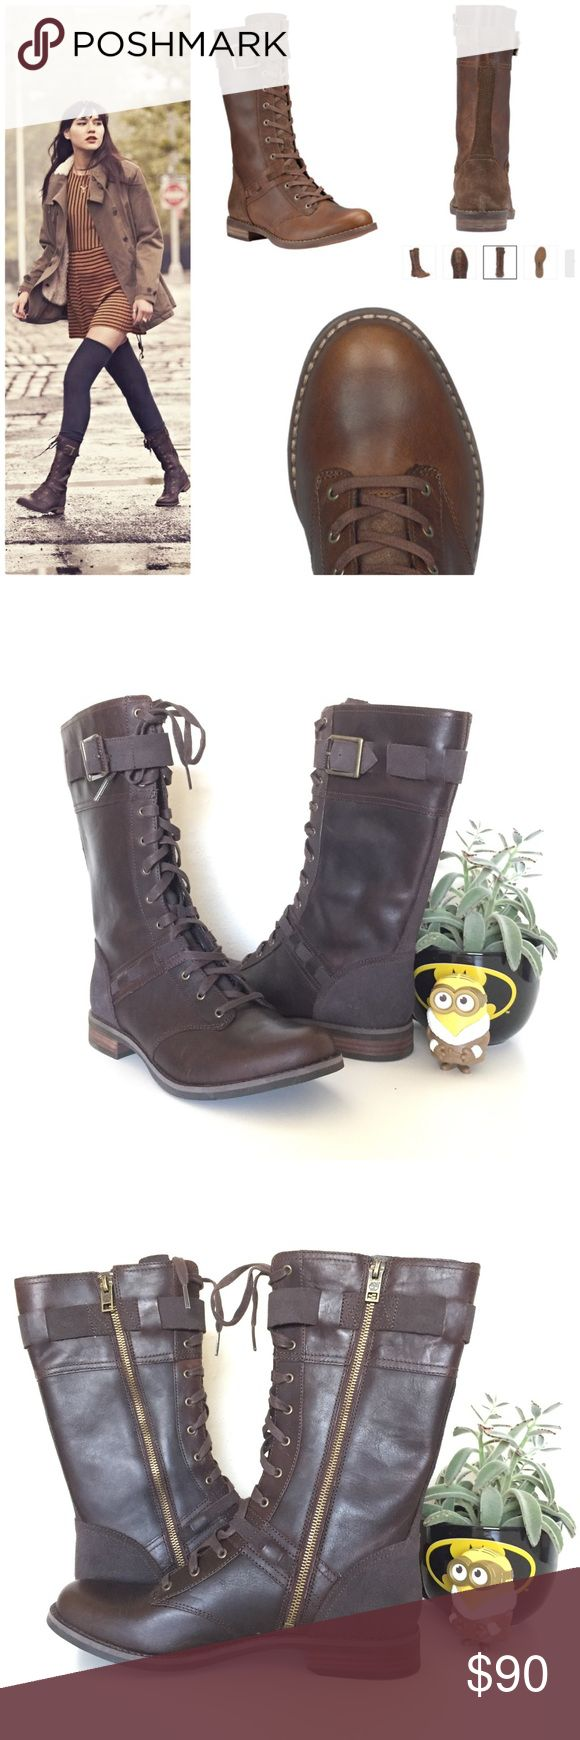 Timberland Earthkeepers Savin Hill Laceup Mid Boot Brand new without box Women size 9 Retail: $180 plus tax  ❌NO Trade.  ❌Lowball Offer Will be IGNORED&BLOCKED.  ⚡️Serious Buyer ONLY⚡️NO DRAMA! ⭐️Same/next day shipping via USPS ⚠I video record all sales from packing to shipping so we are both protected ⚠ Timberland Shoes Lace Up Boots